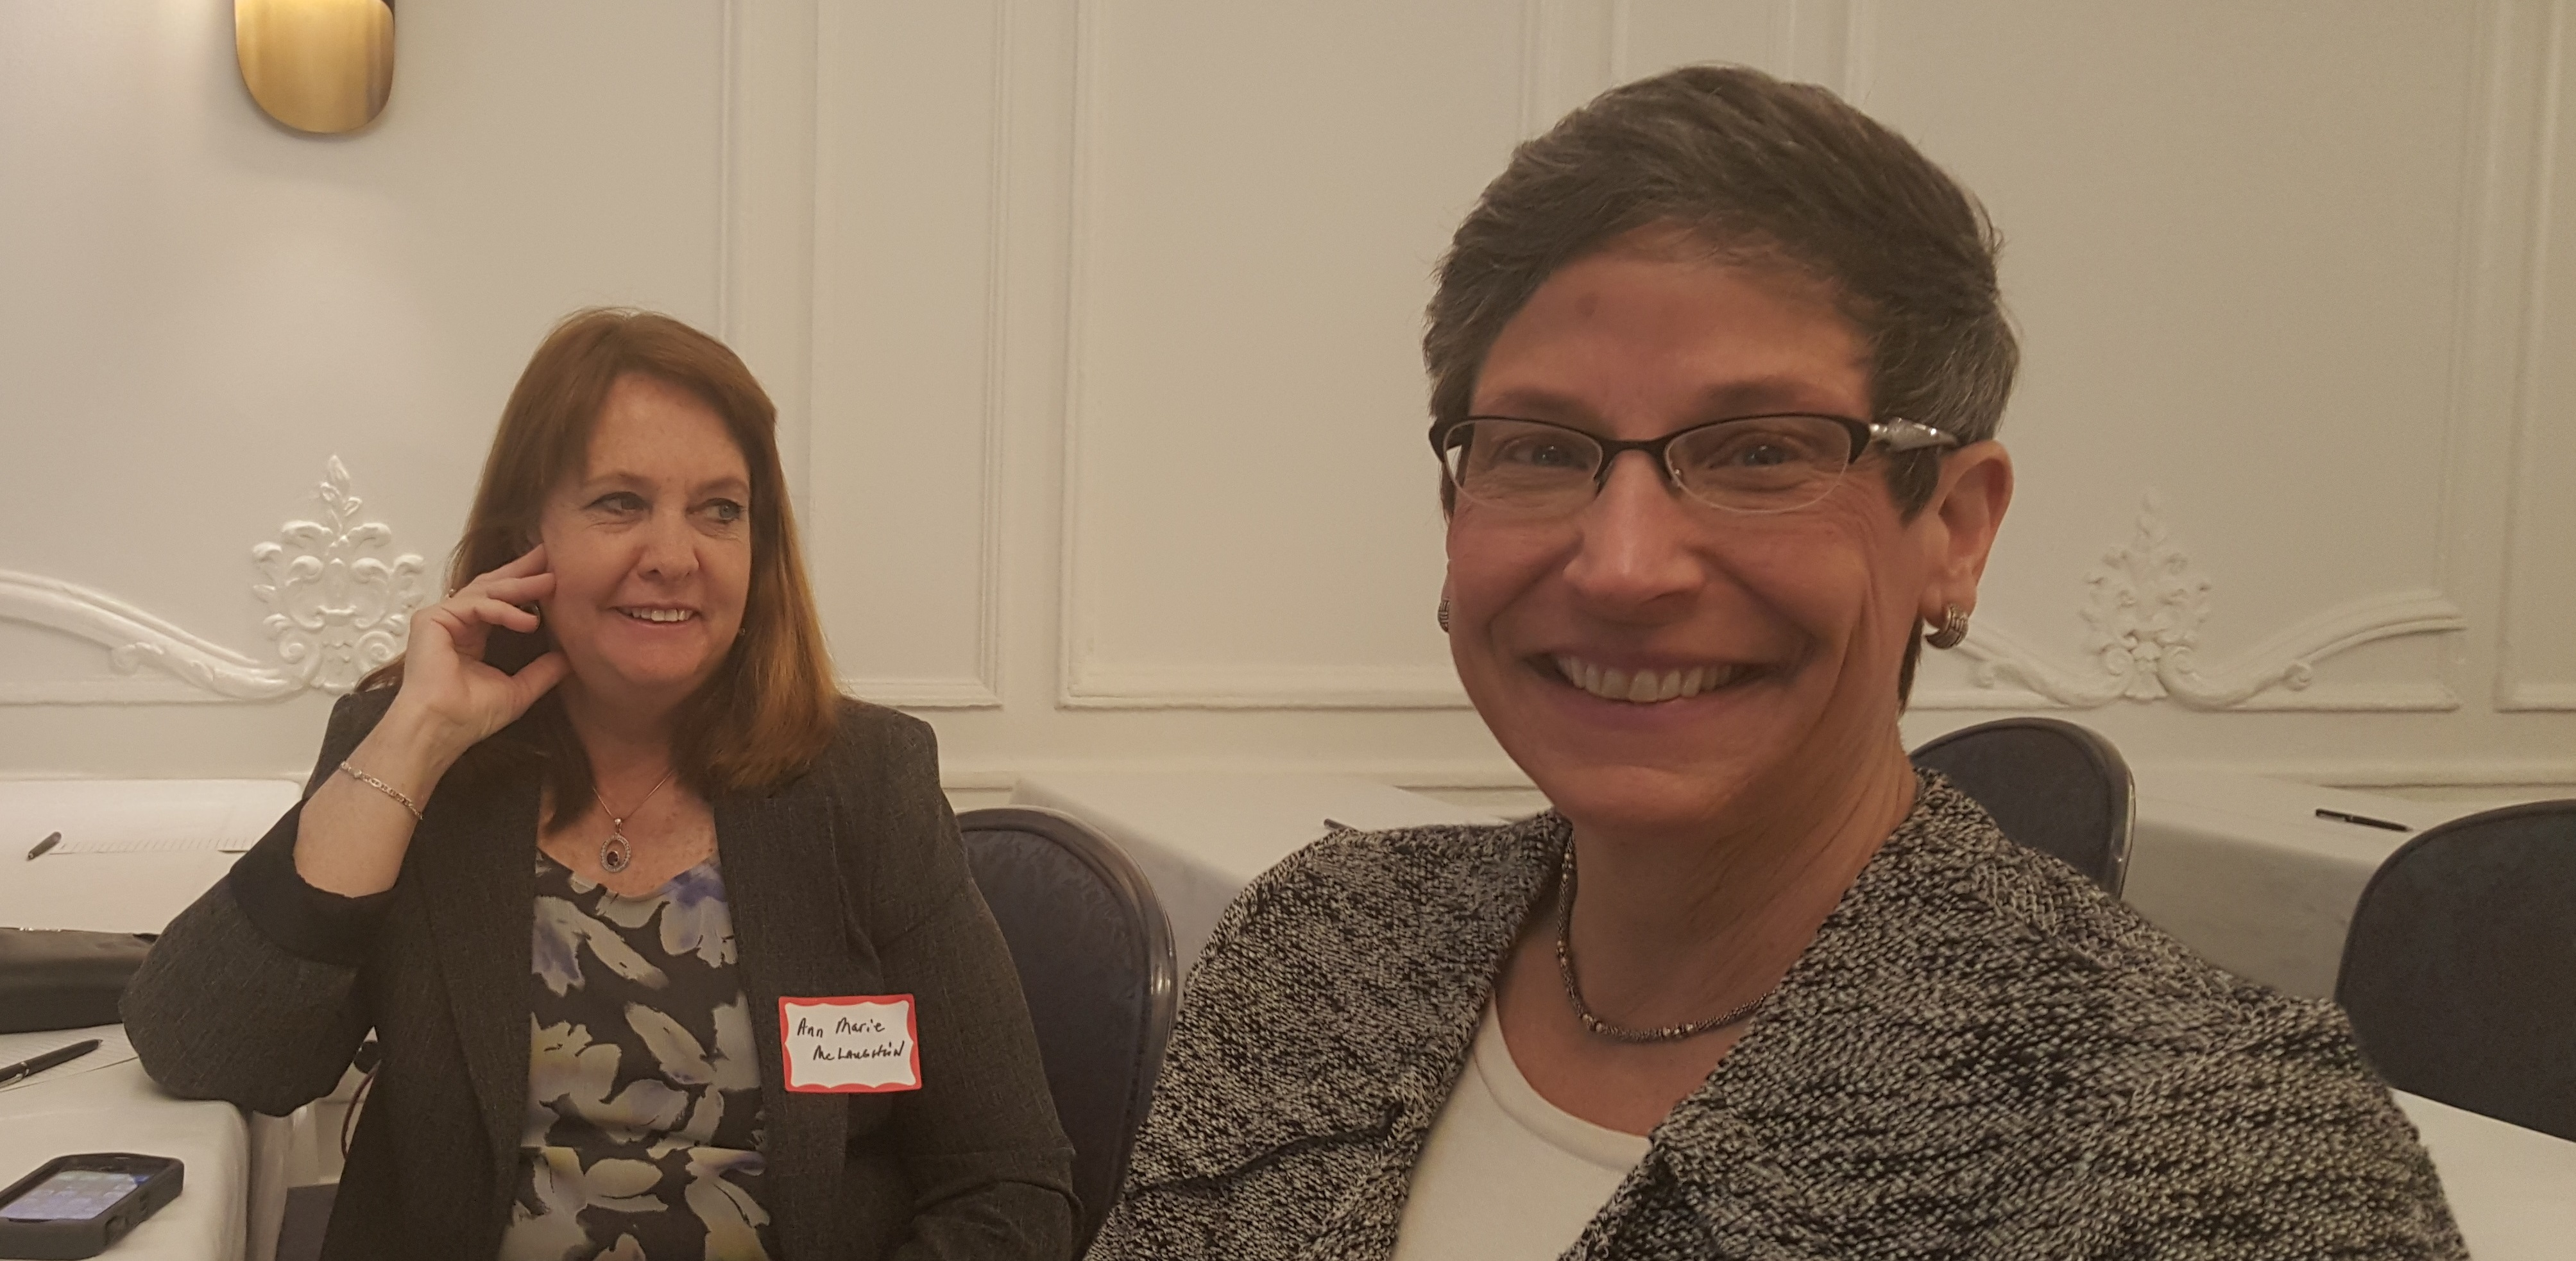 Ann Marie McLaughlin (left) and Nina Geier, 2016 Mid-Year Meeting, Chicago